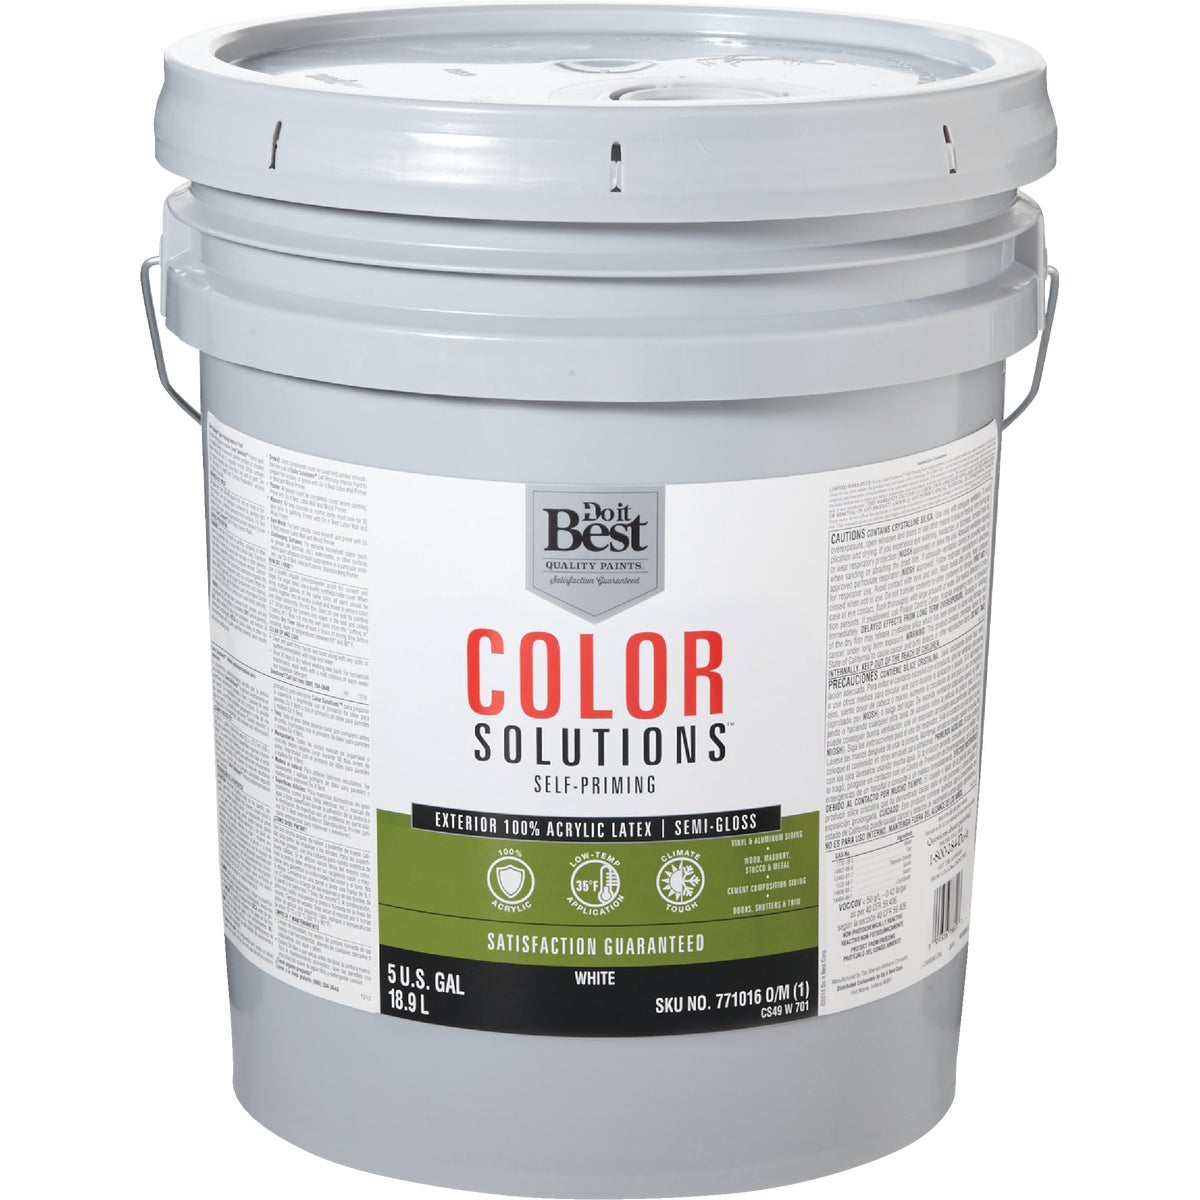 EXT S/G WHITE PAINT - CS49W0701-20 by Do it Best